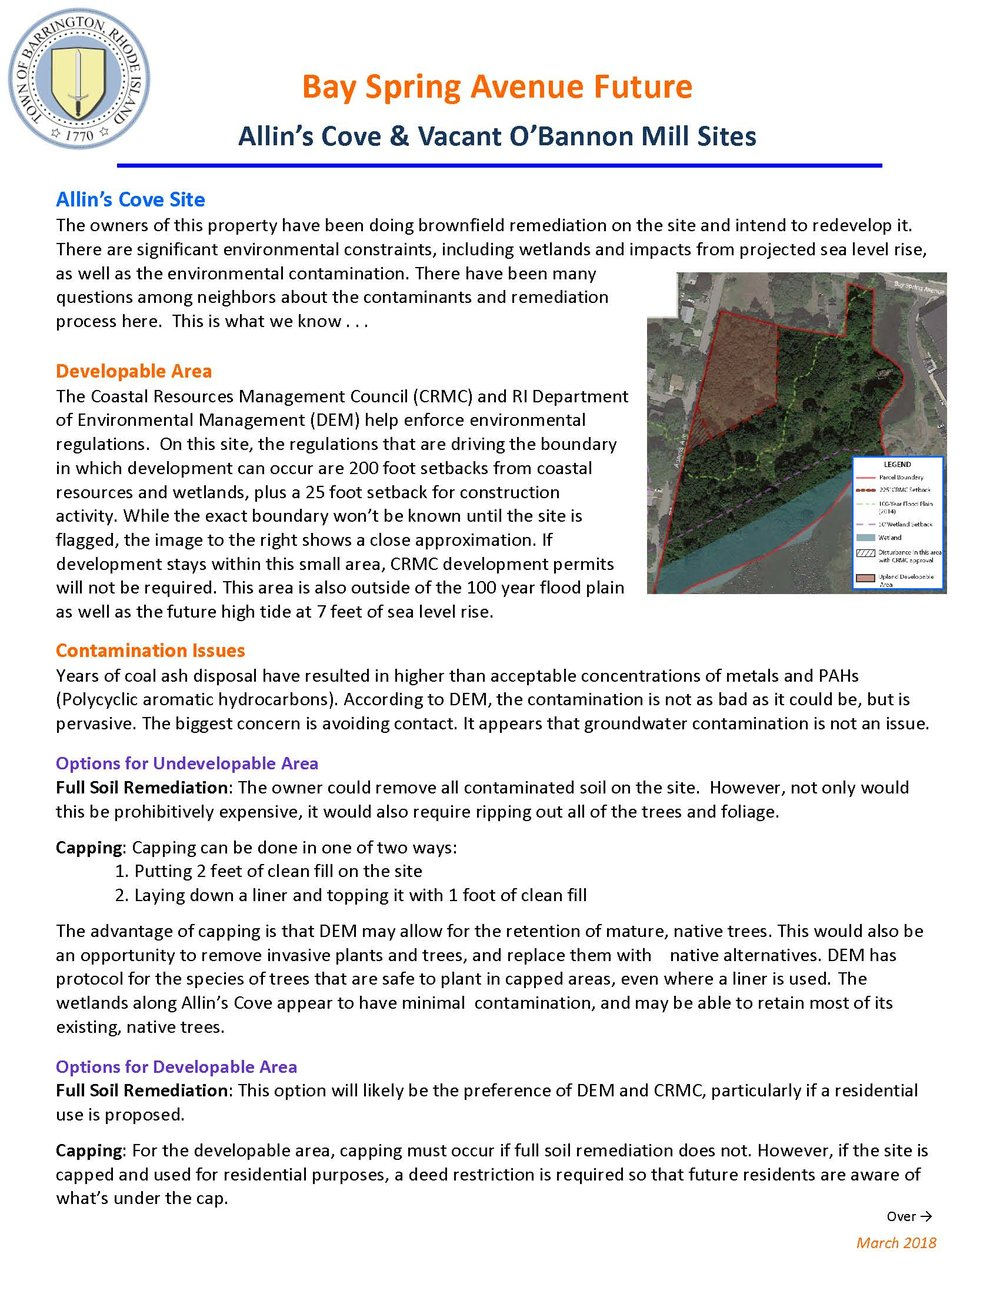 Bay Spring Realty Properties One-Pager_Page_1.jpg